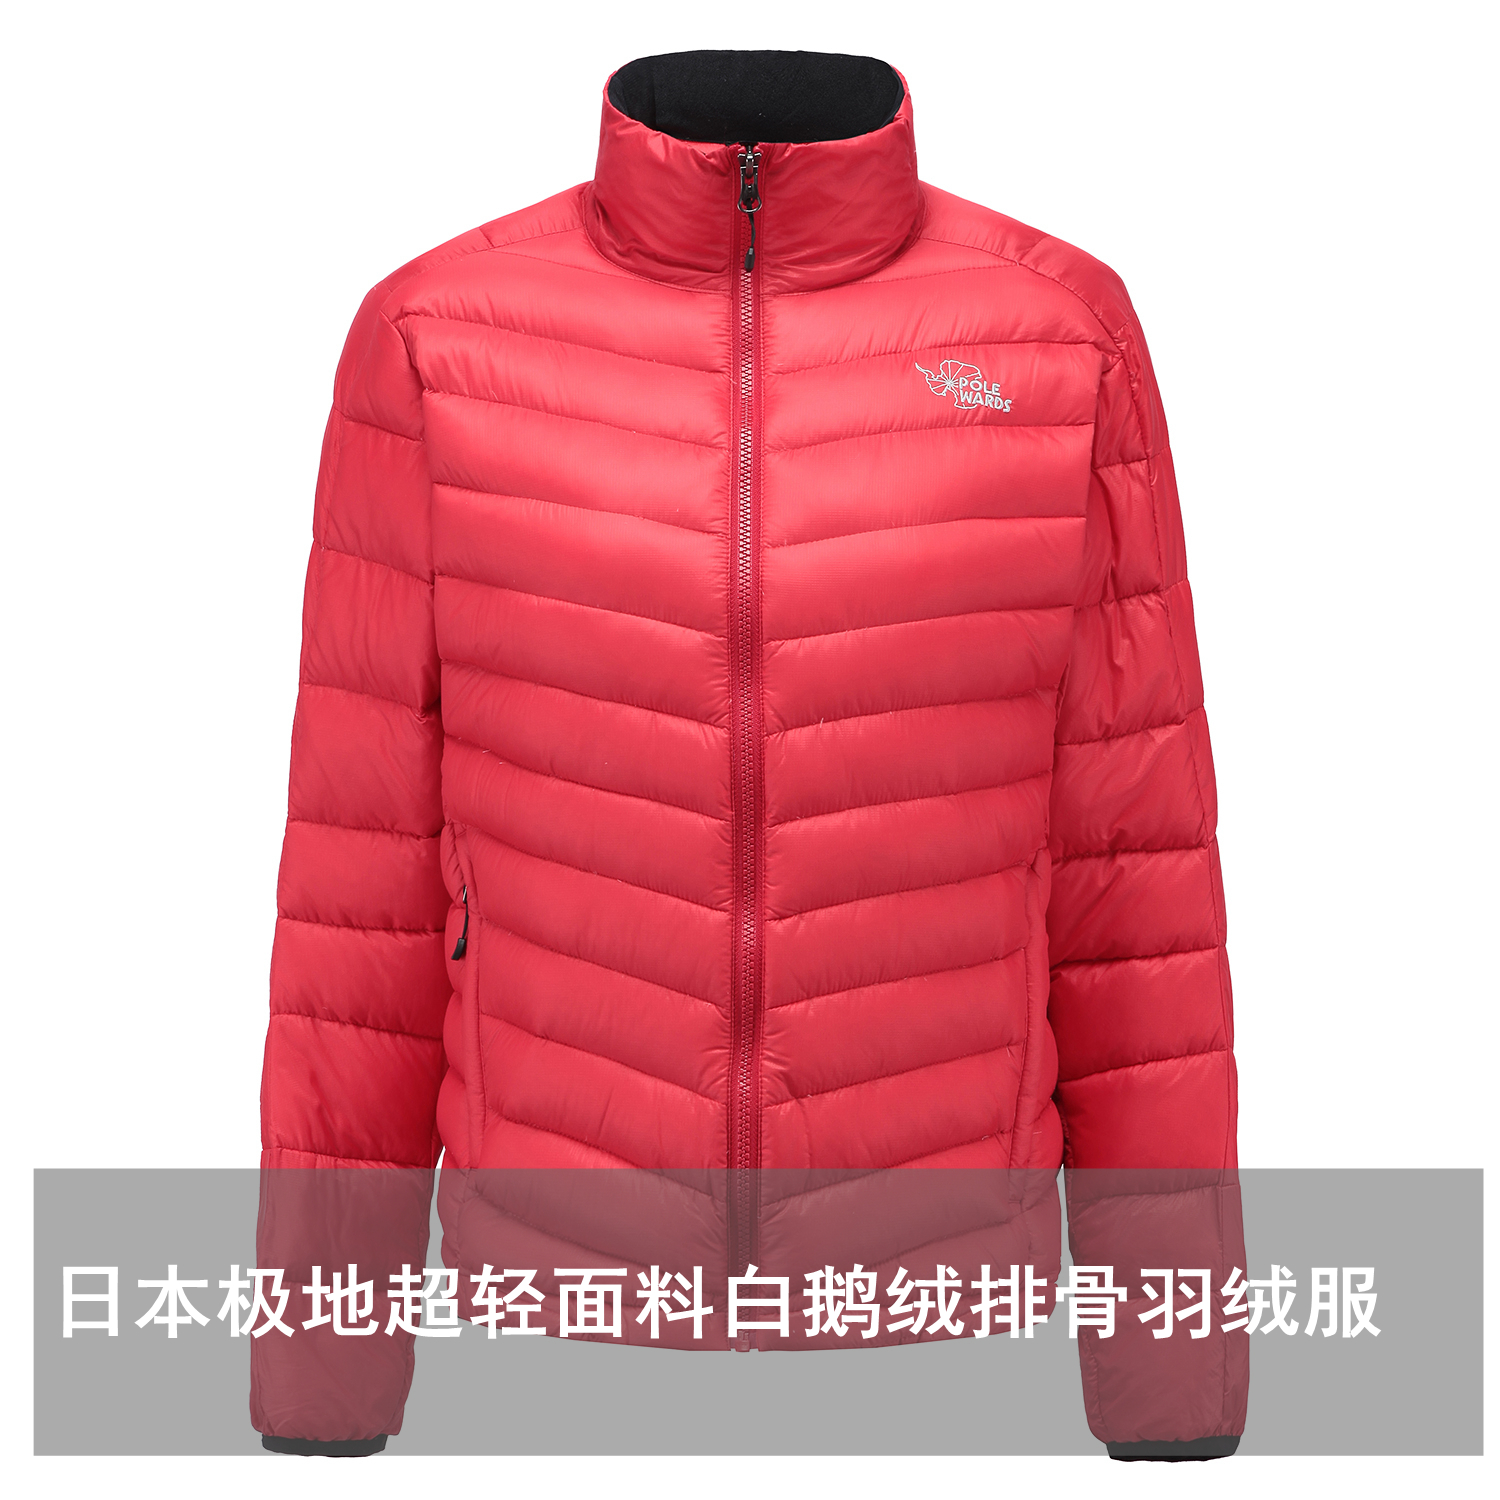 [The goods stop production and no stock]Clearance Specials Polar Expedition Windproof Warm Water Repellent 10D Ultralight Goose down 700 排排骨绒衣 Men and women